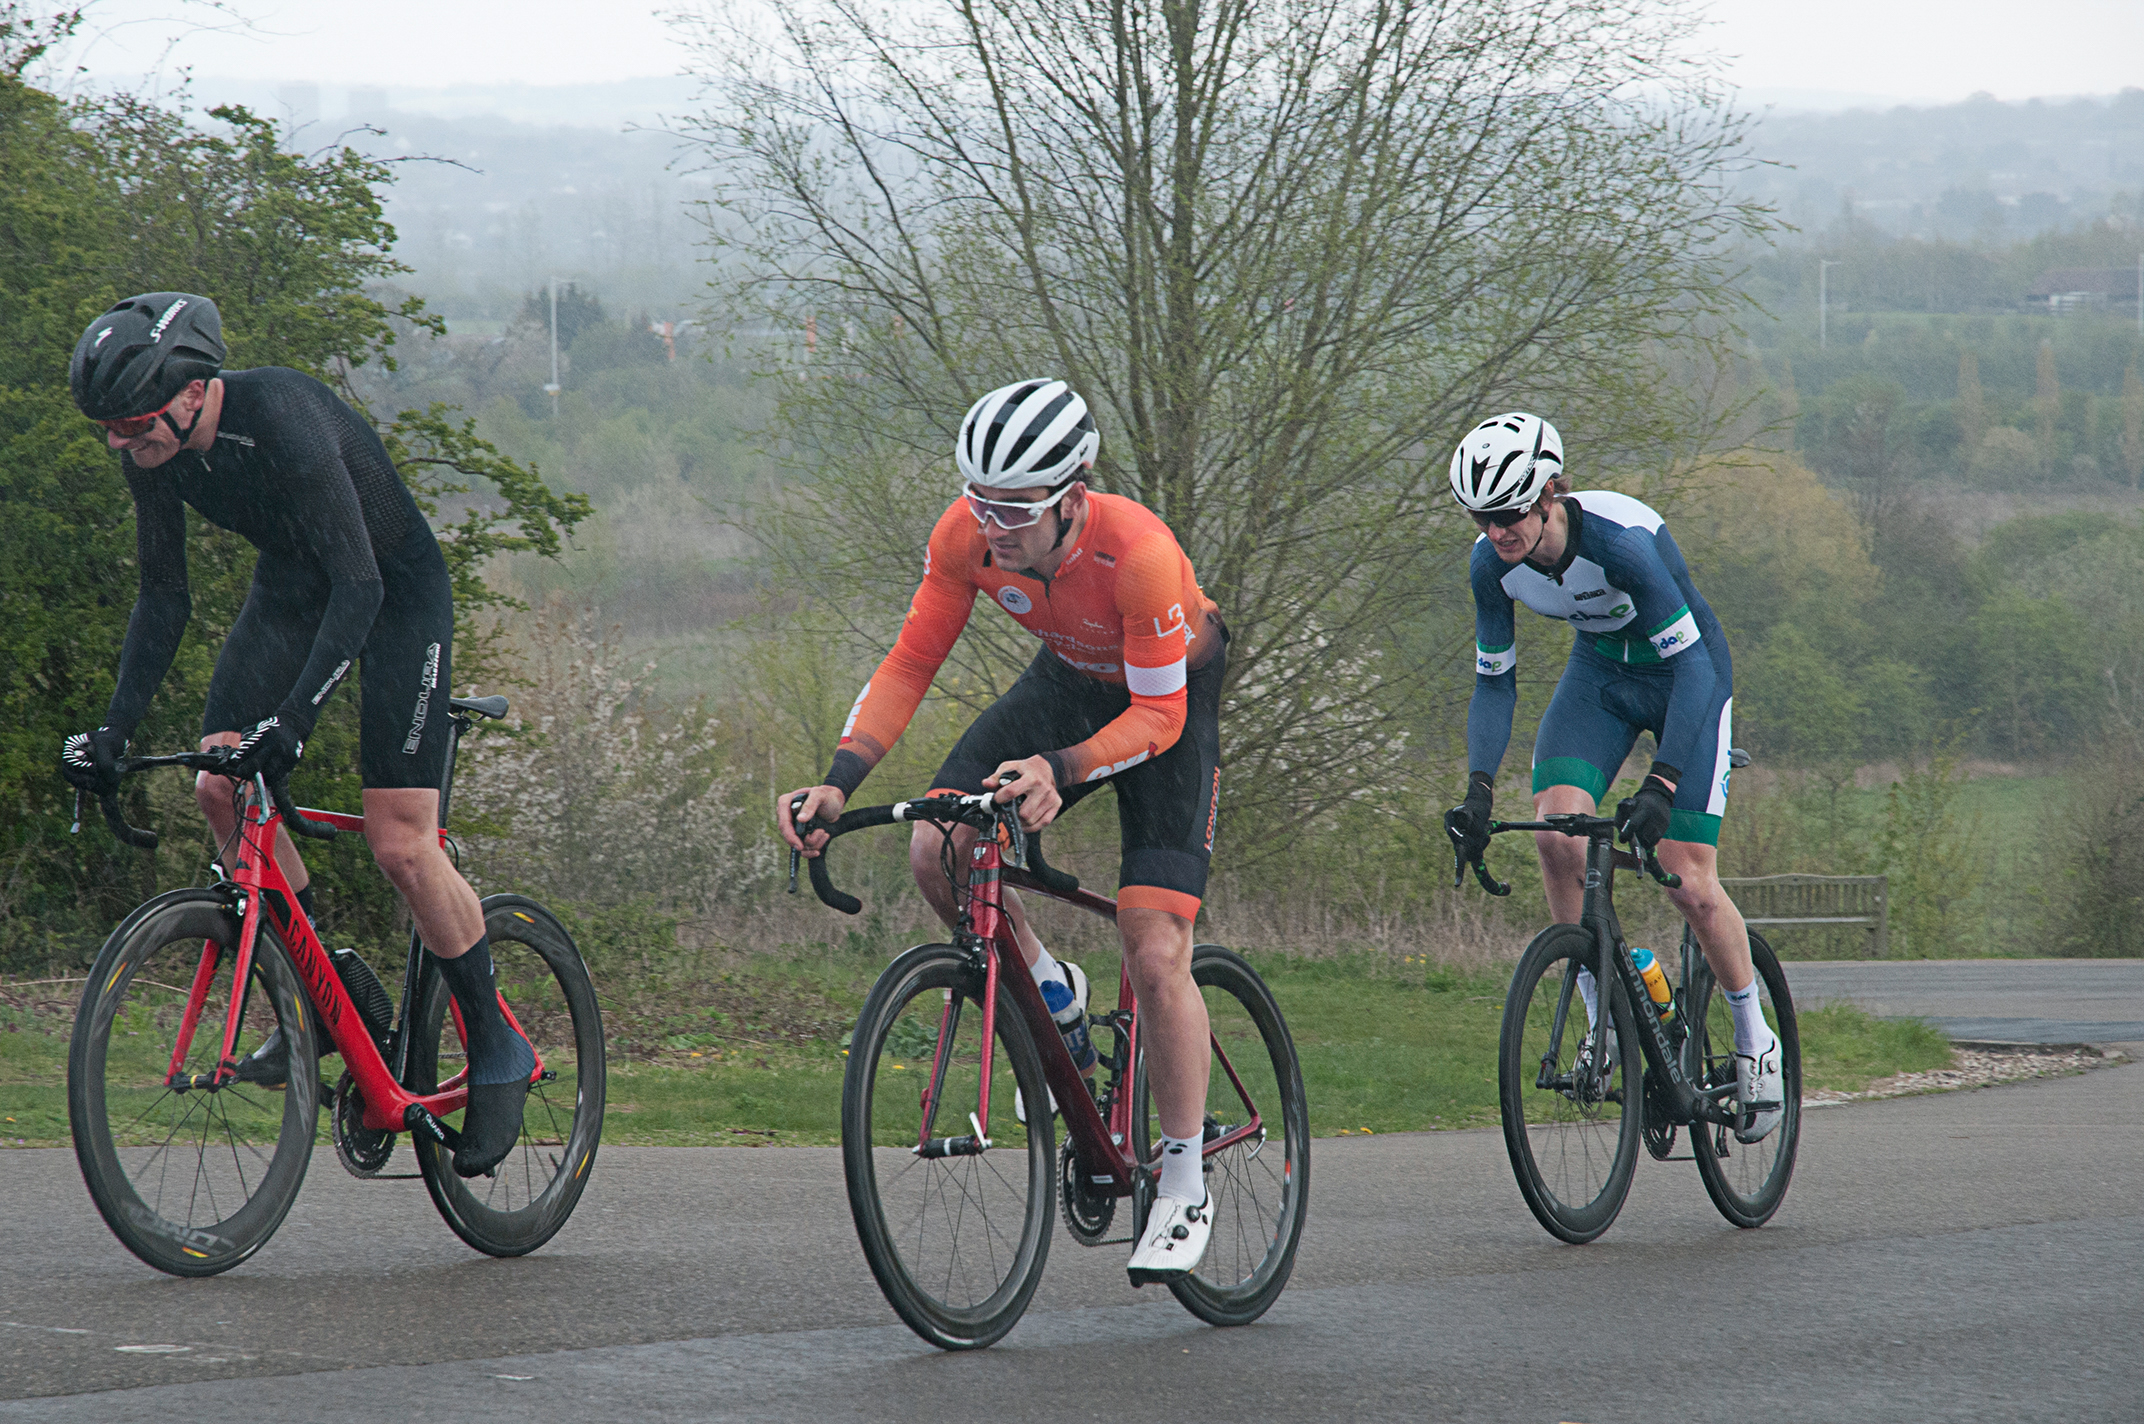 2019 Monument Spring crits 4 (10 of 25).JPG